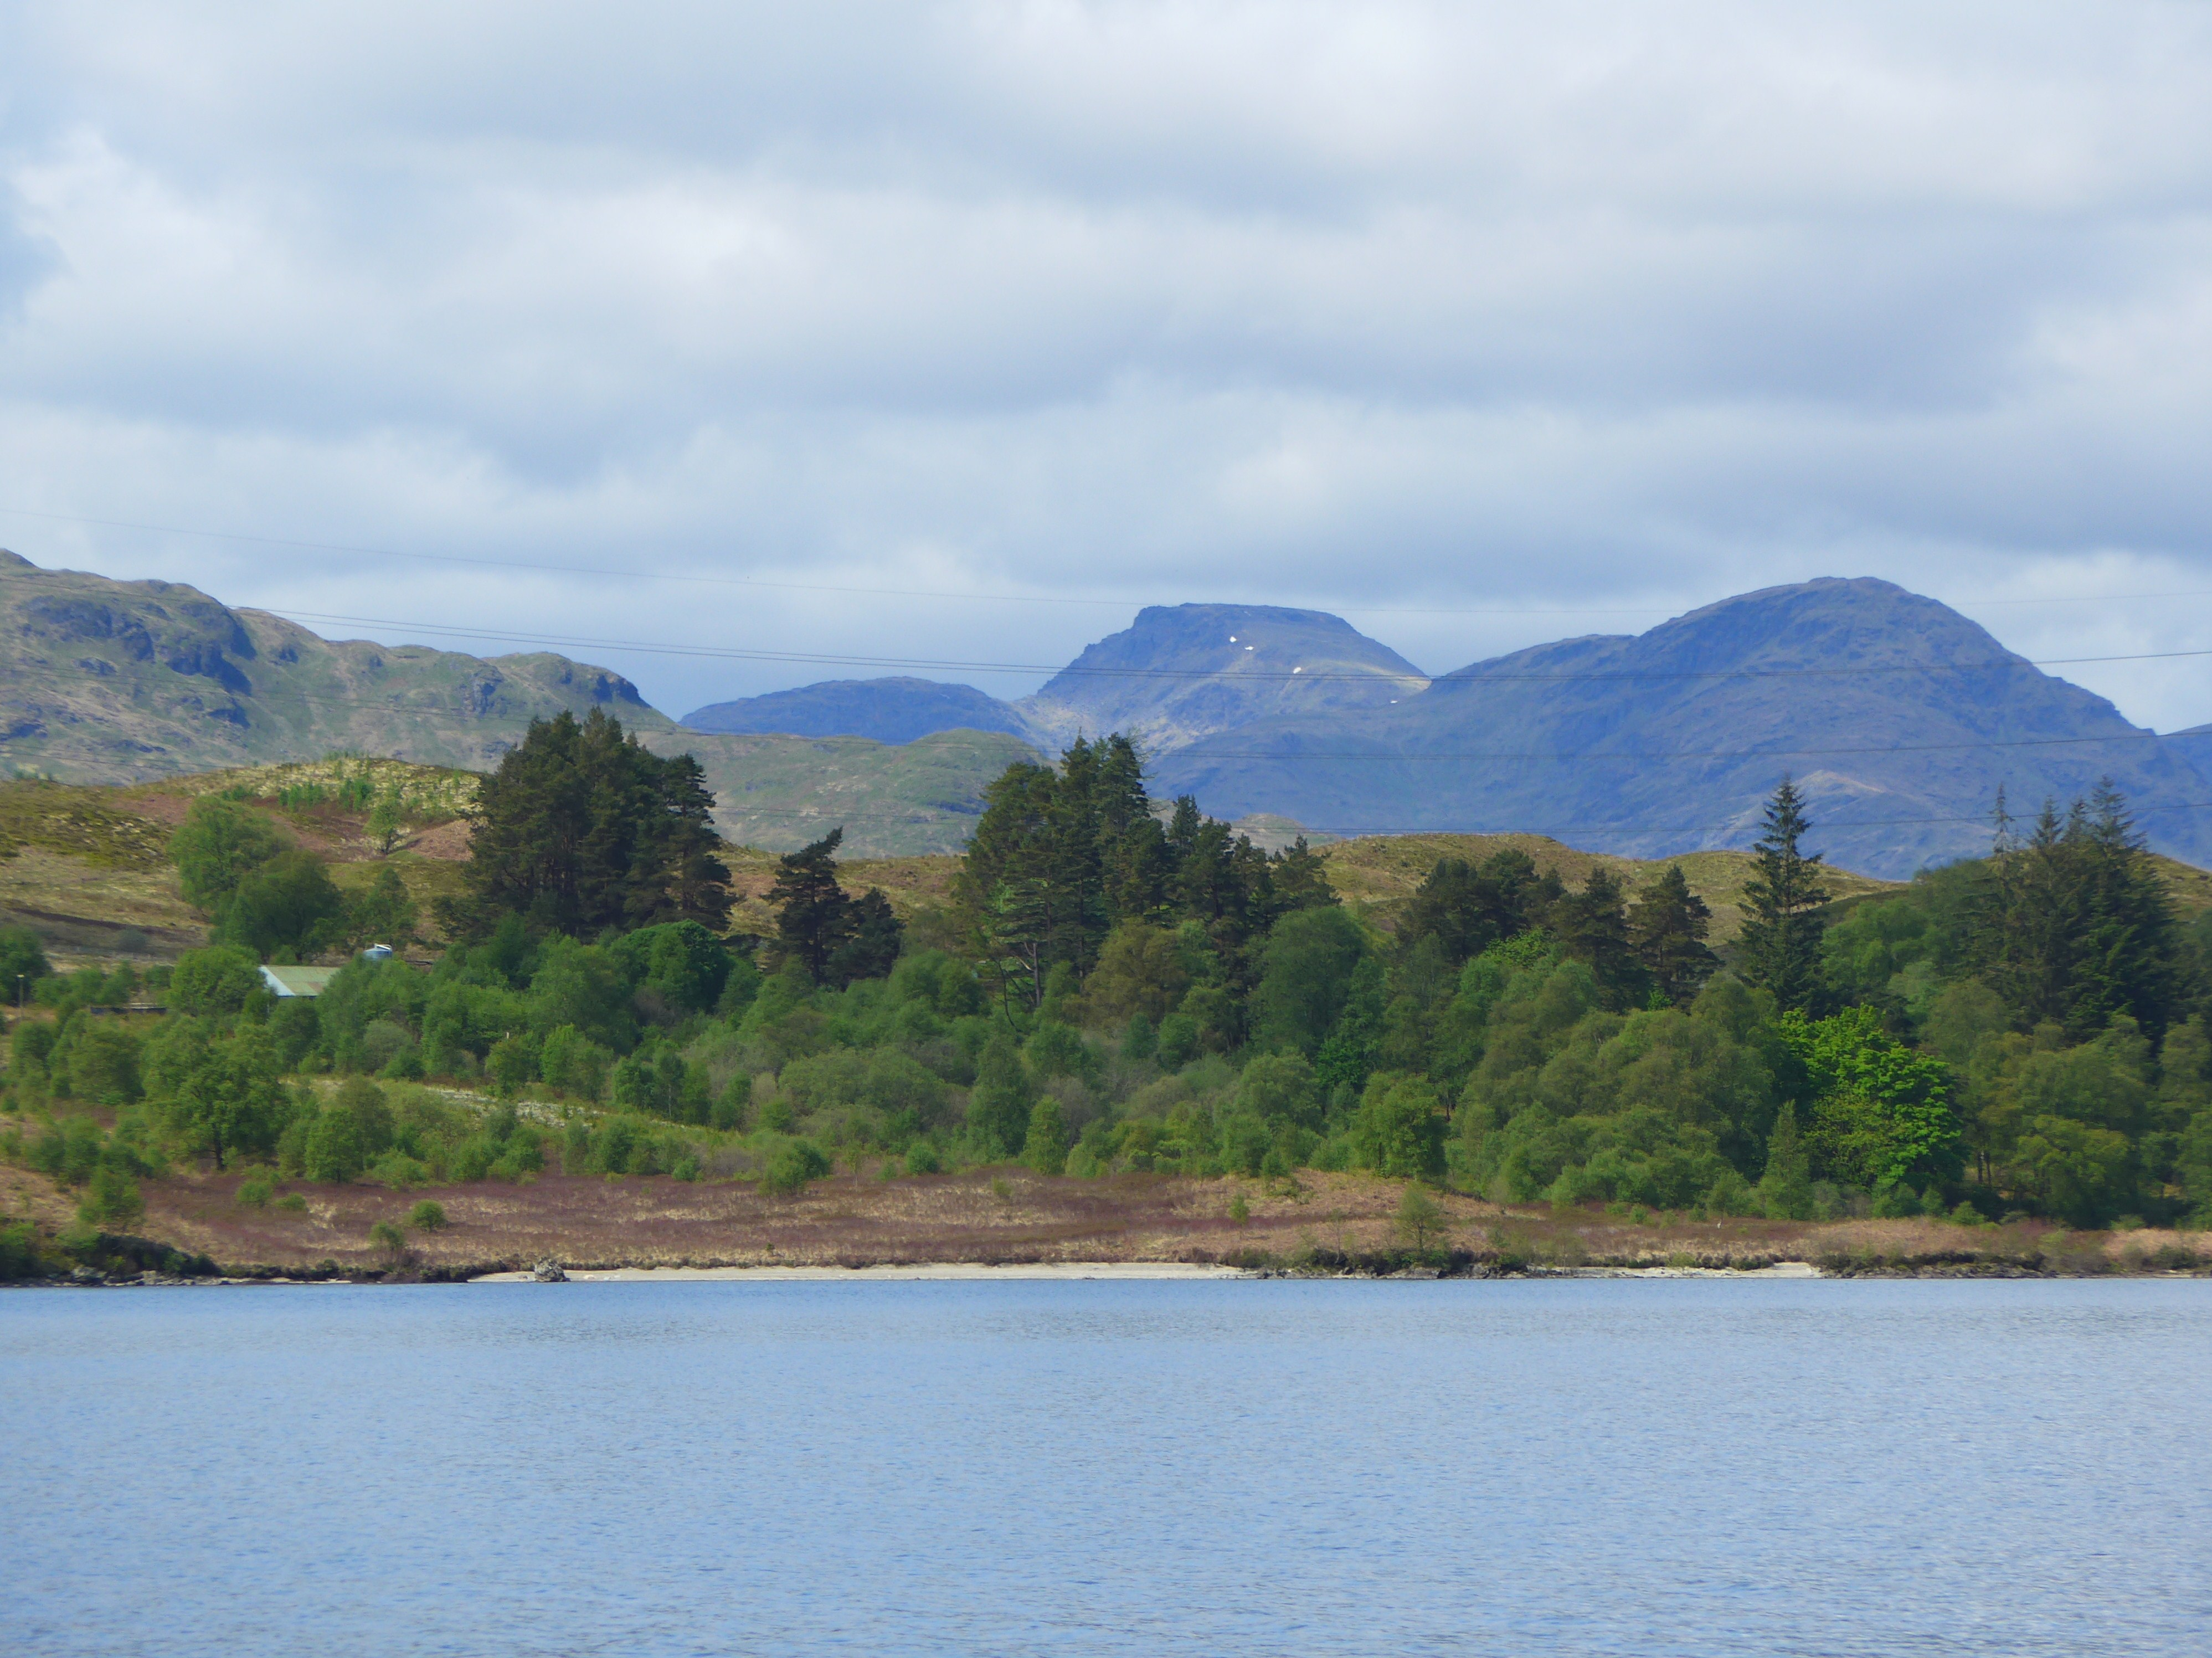 Mountains and Loch Katrine photo by Diane Young Artist at stroud